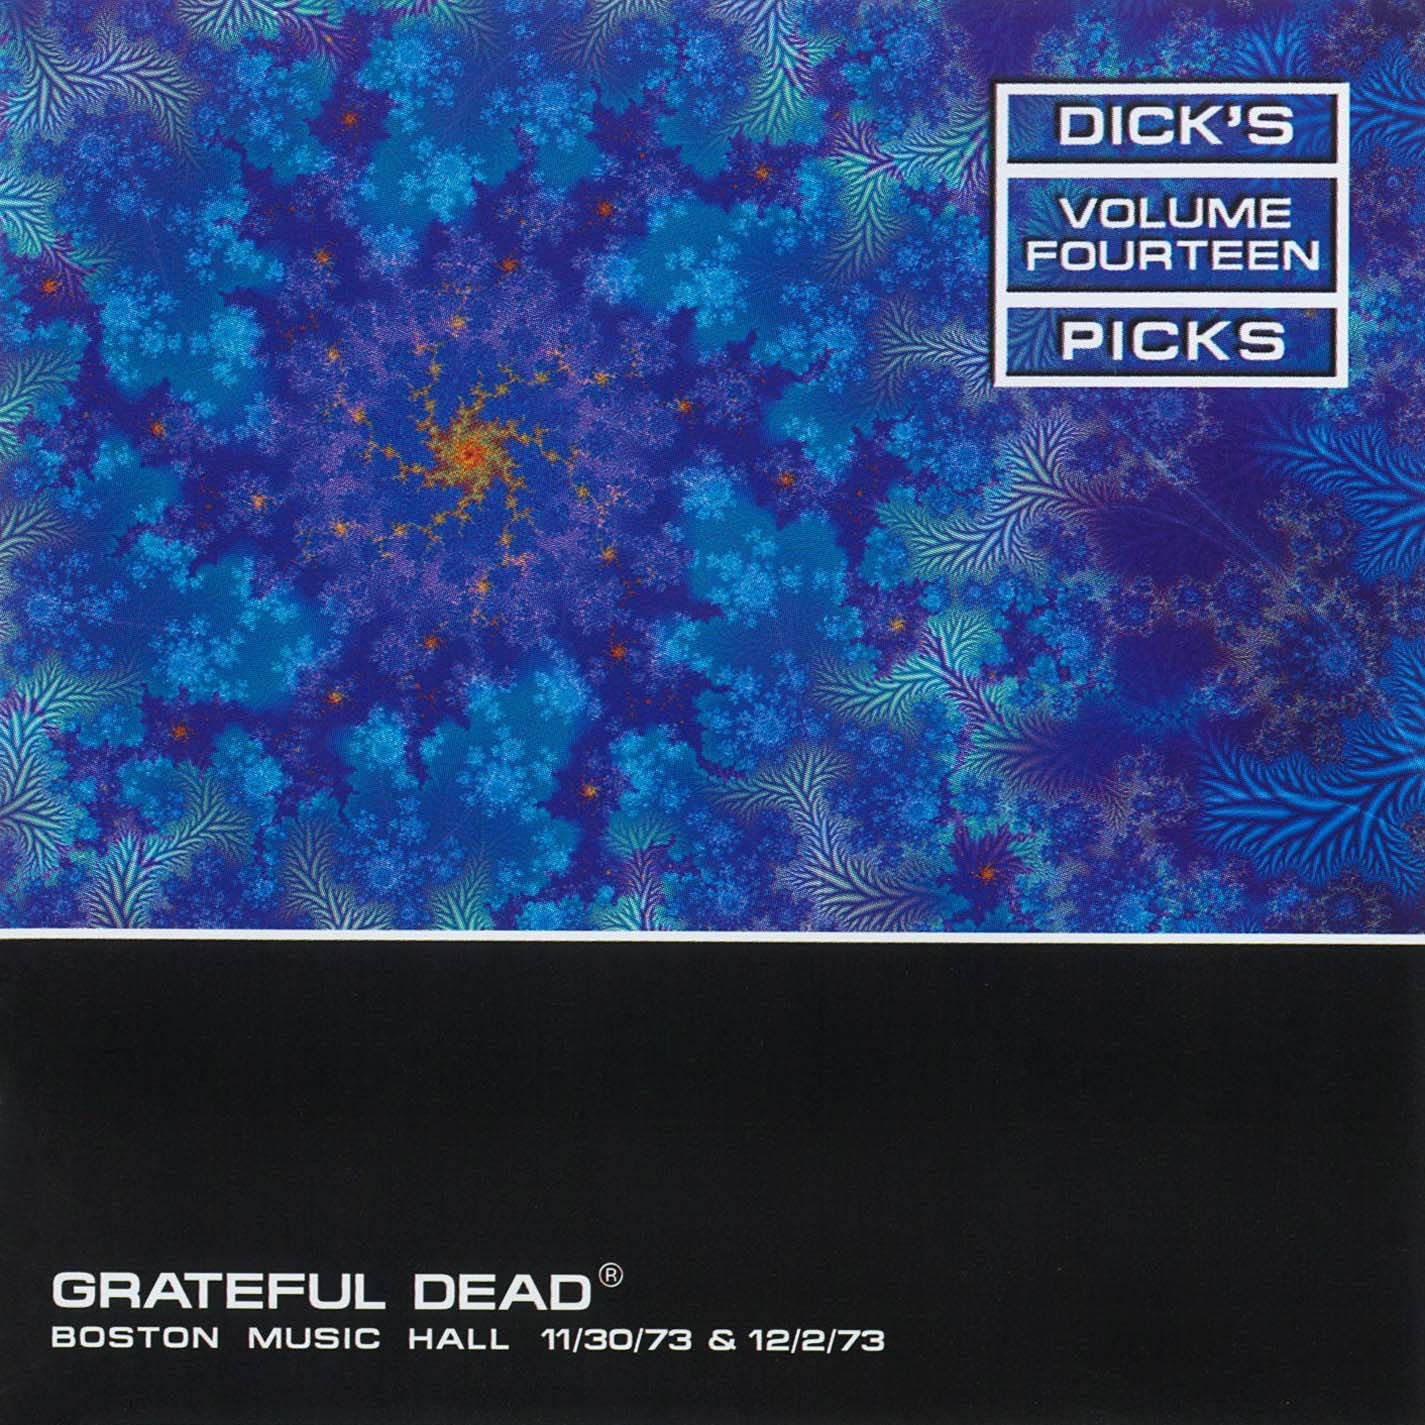 Grateful Dead Dick's Picks 14 album cover artwork